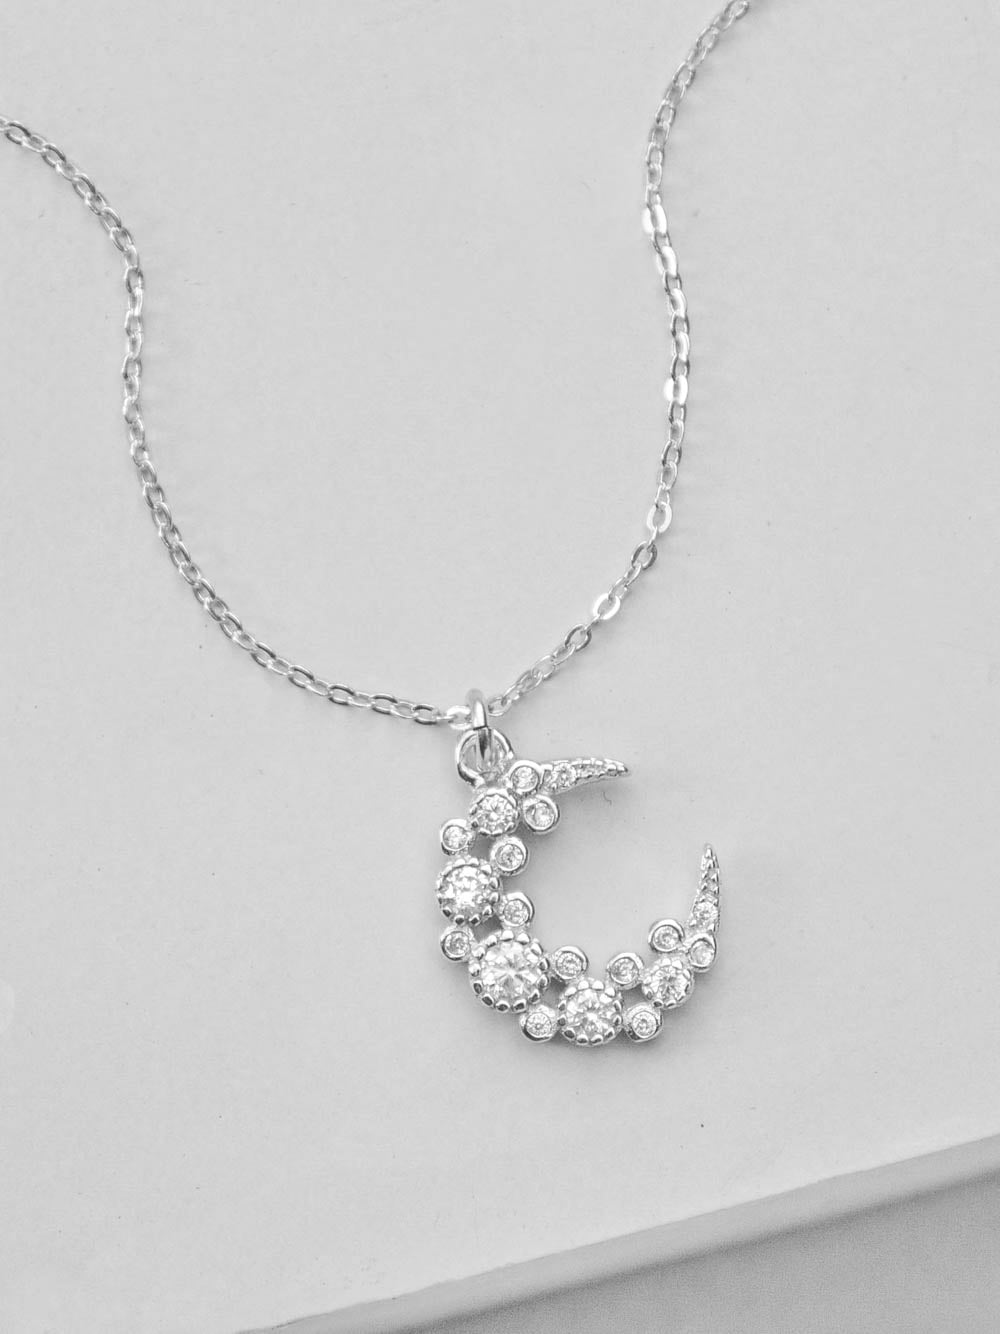 Silver Cluster Moon CZ Charm Necklace  by The Faint Hearted Jewelry